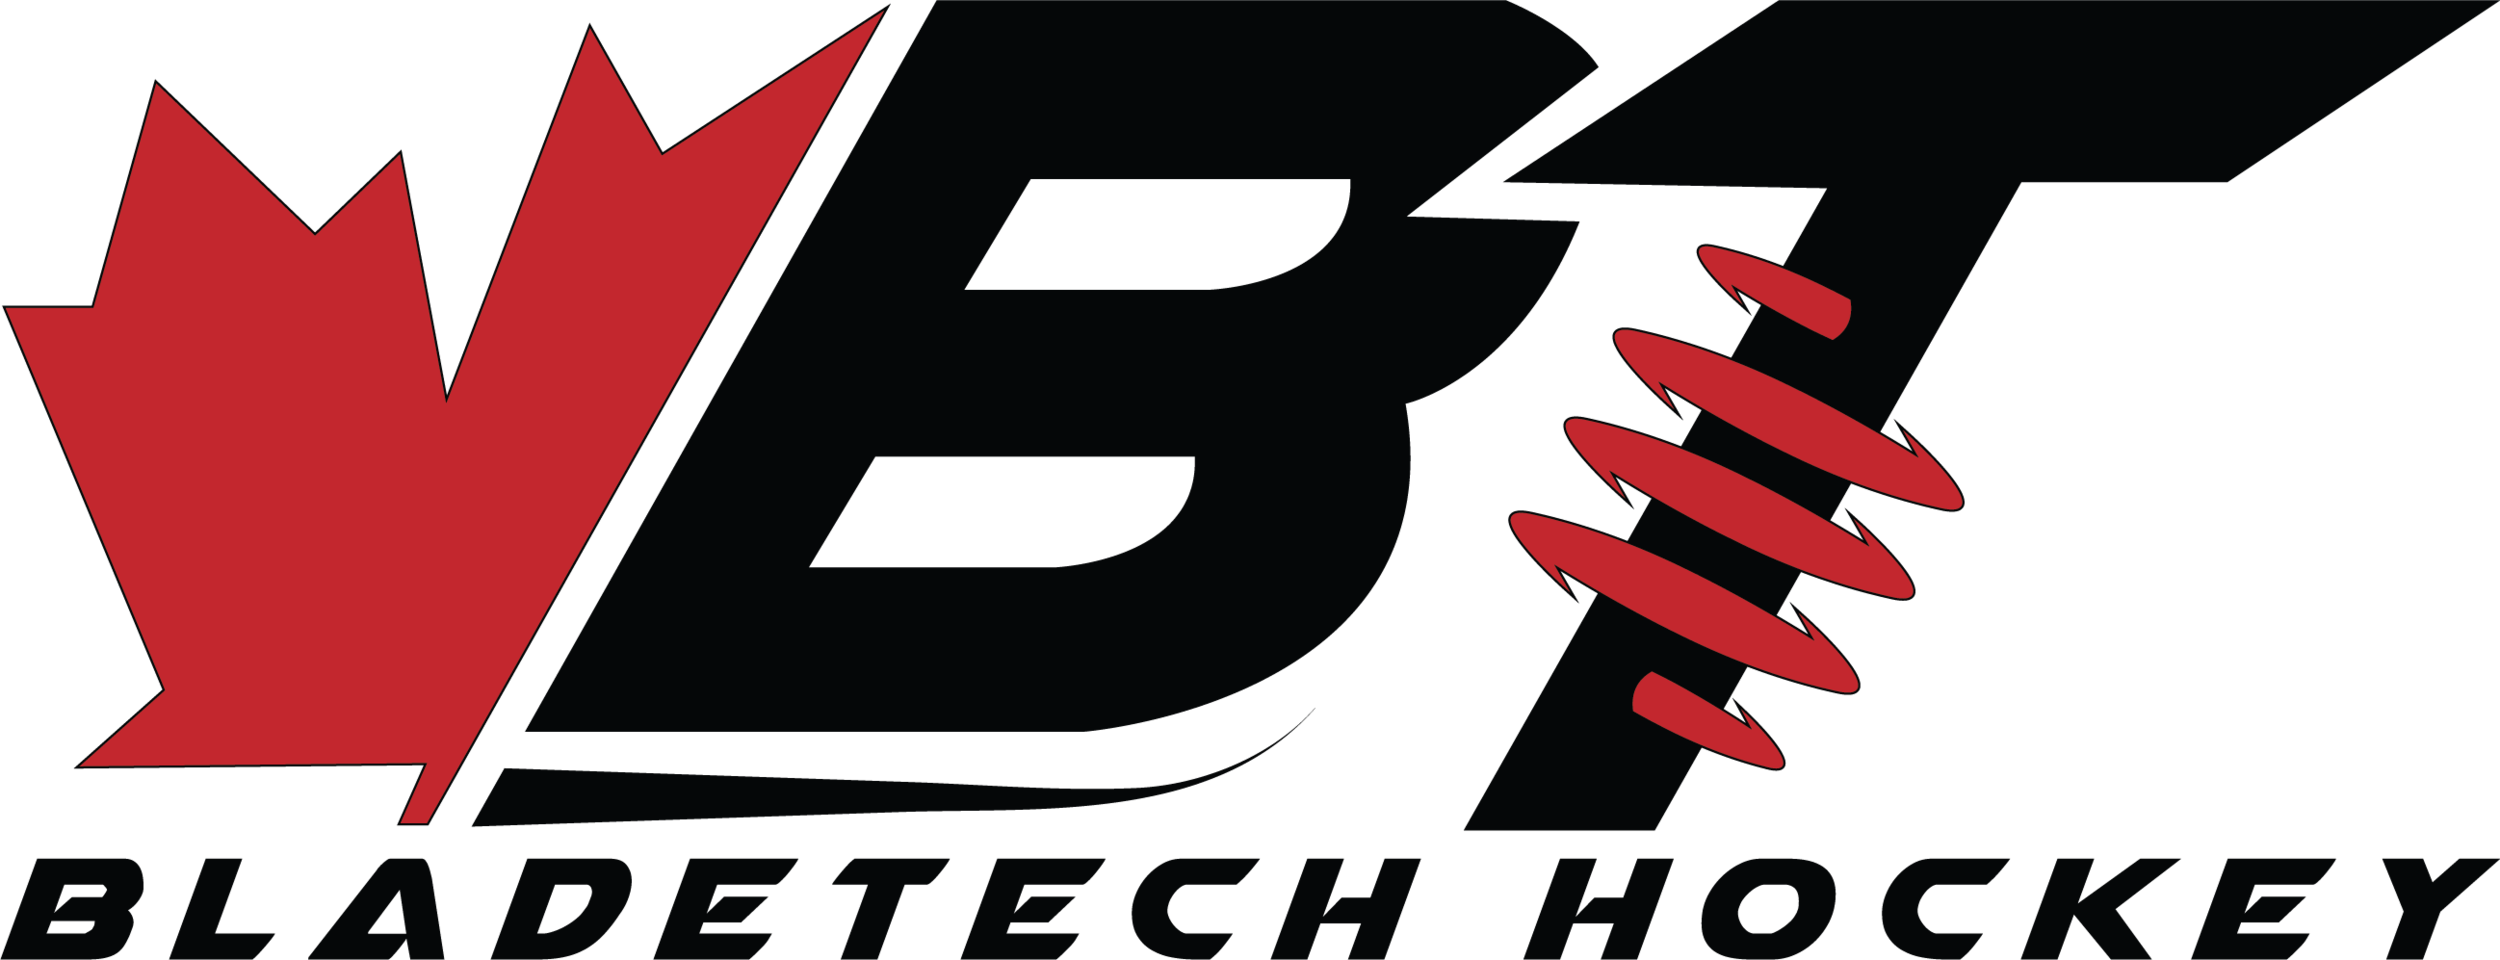 BT Logo - Red and Black.png